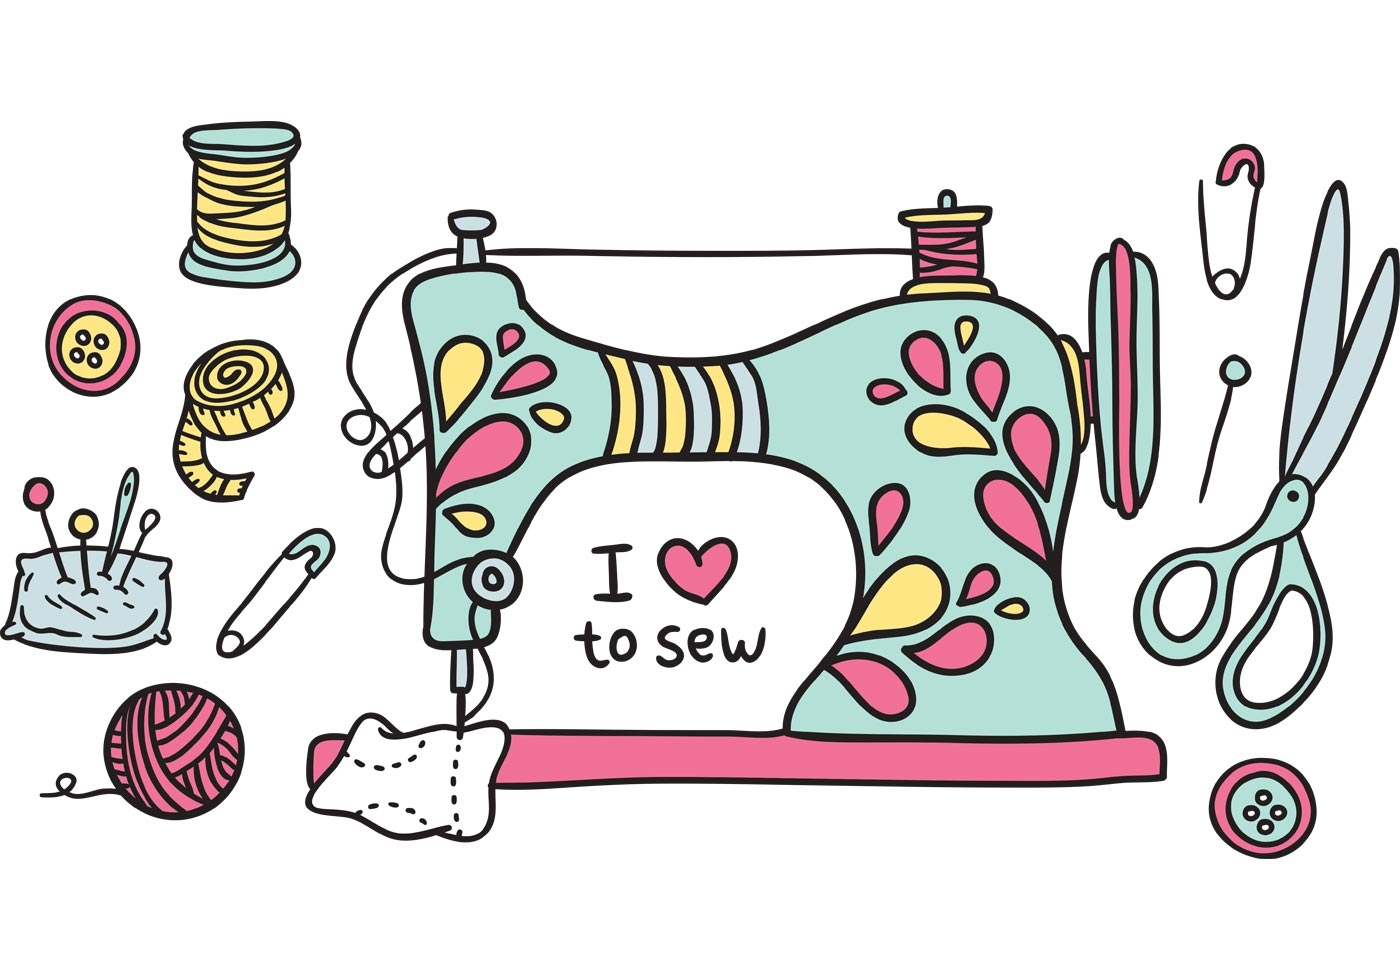 Free clipart sewing machine-Free clipart sewing machine-12